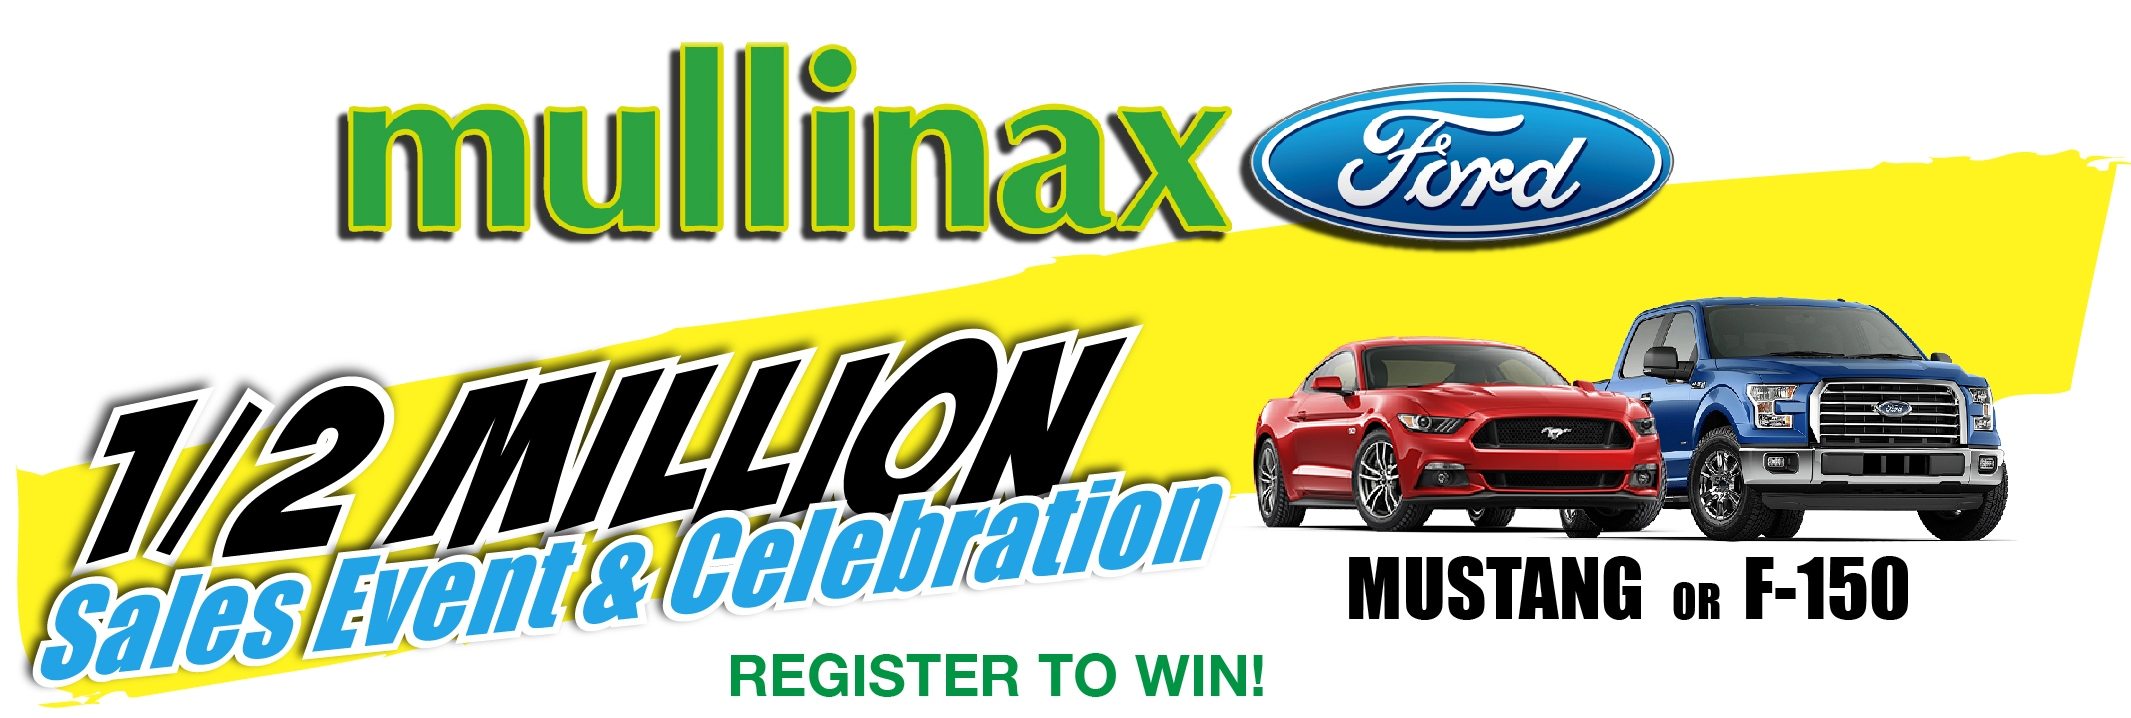 Mullinax Ford Of Mobile New Lincoln, Ford Dealership In Mobile, AL 36608